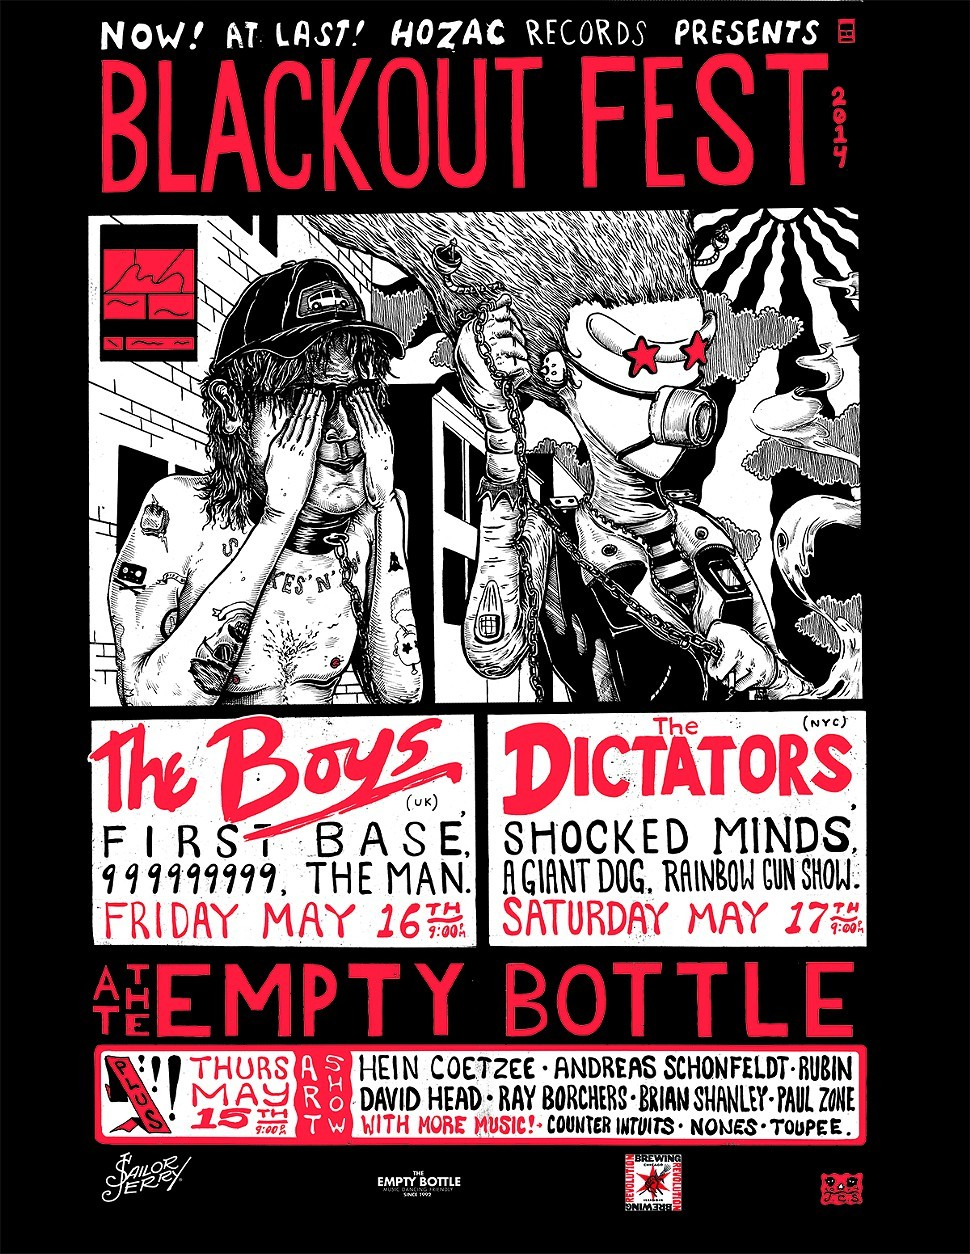 blackoutfestposter.jpg